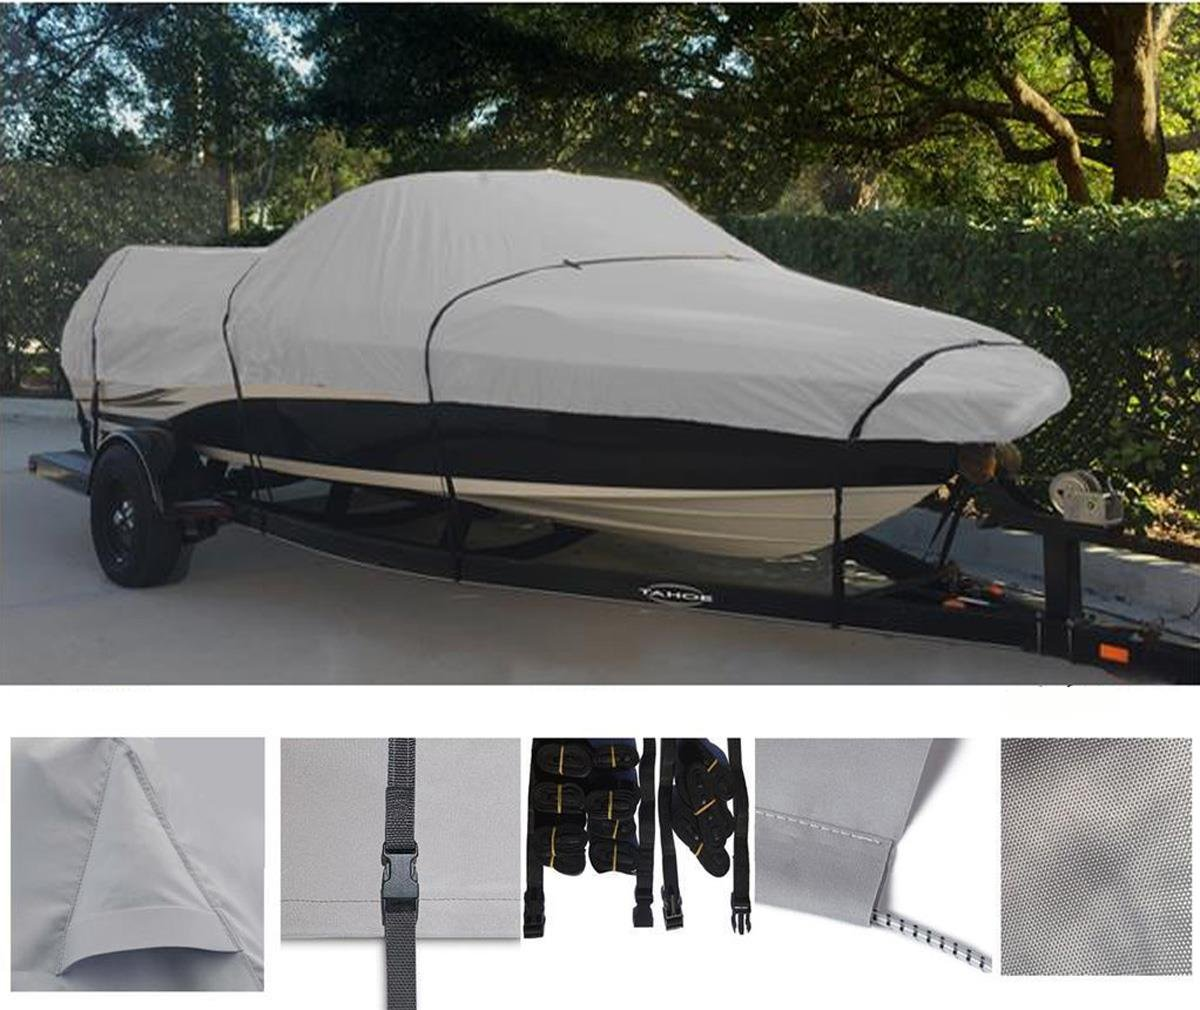 GREY, STORAGE, TRAVEL, MOORING BOAT COVER FOR MasterCraft Boats ProStar 190 1988 1989 1990 by SBU